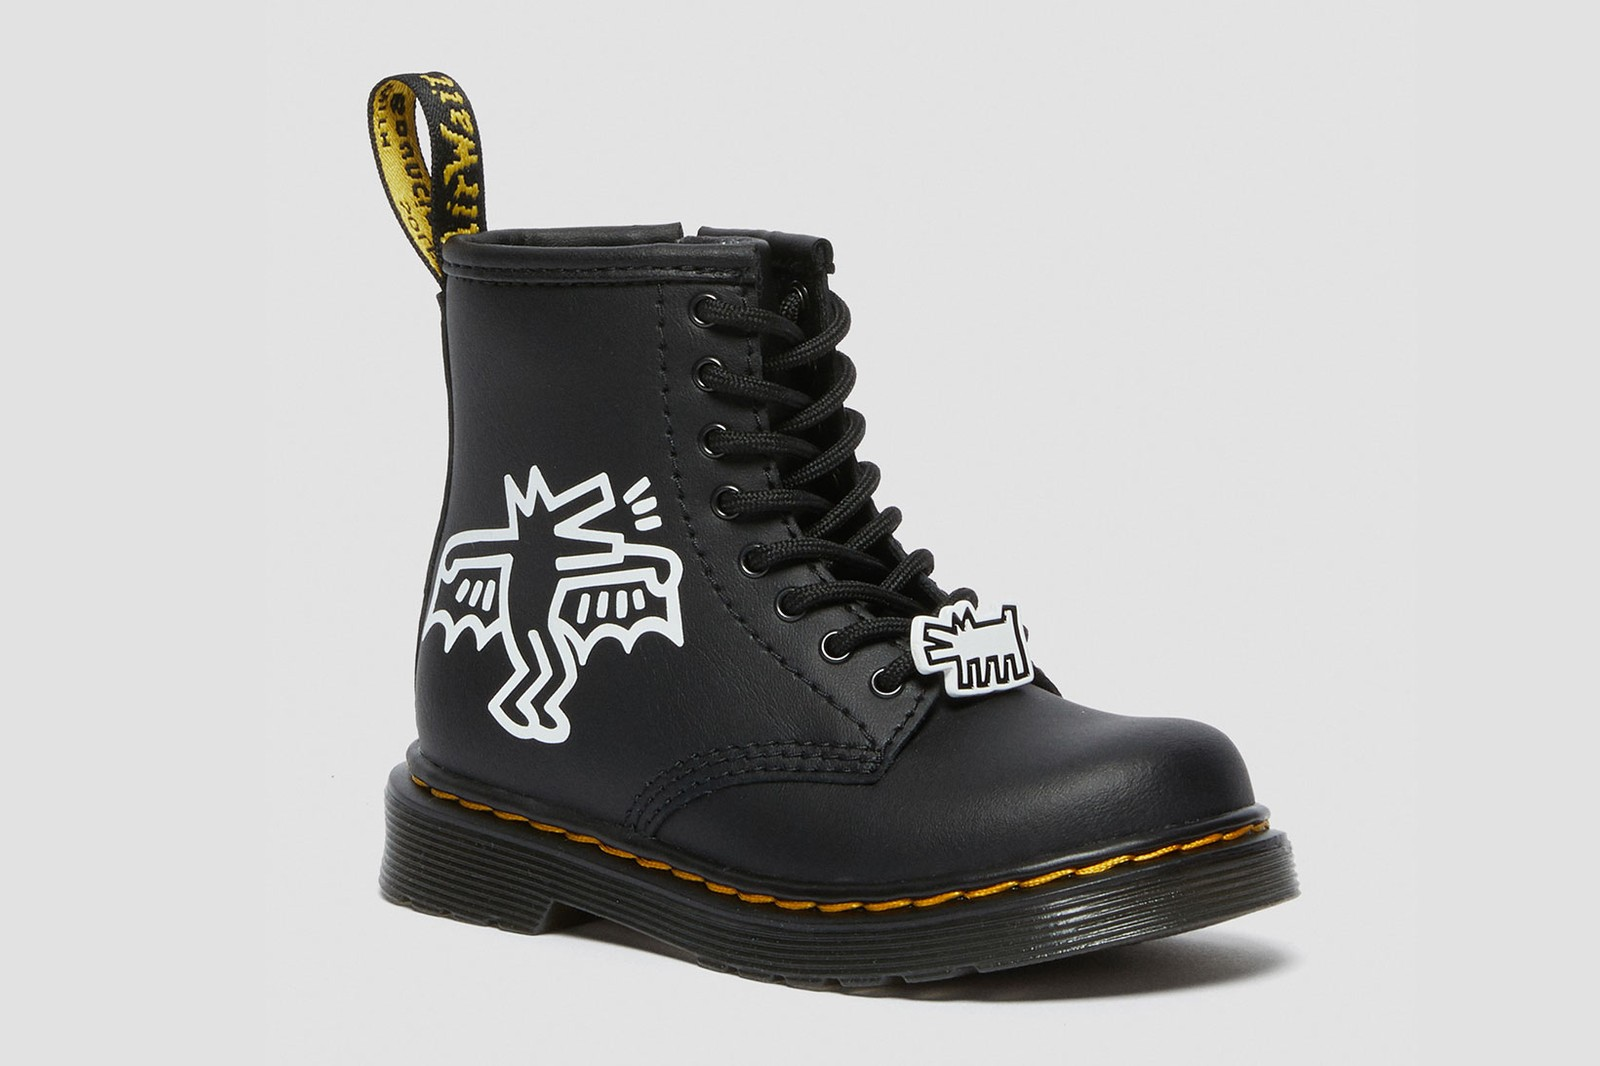 dr martens keith haring boots derby shoes collaboration artist illustrations 1460 1461